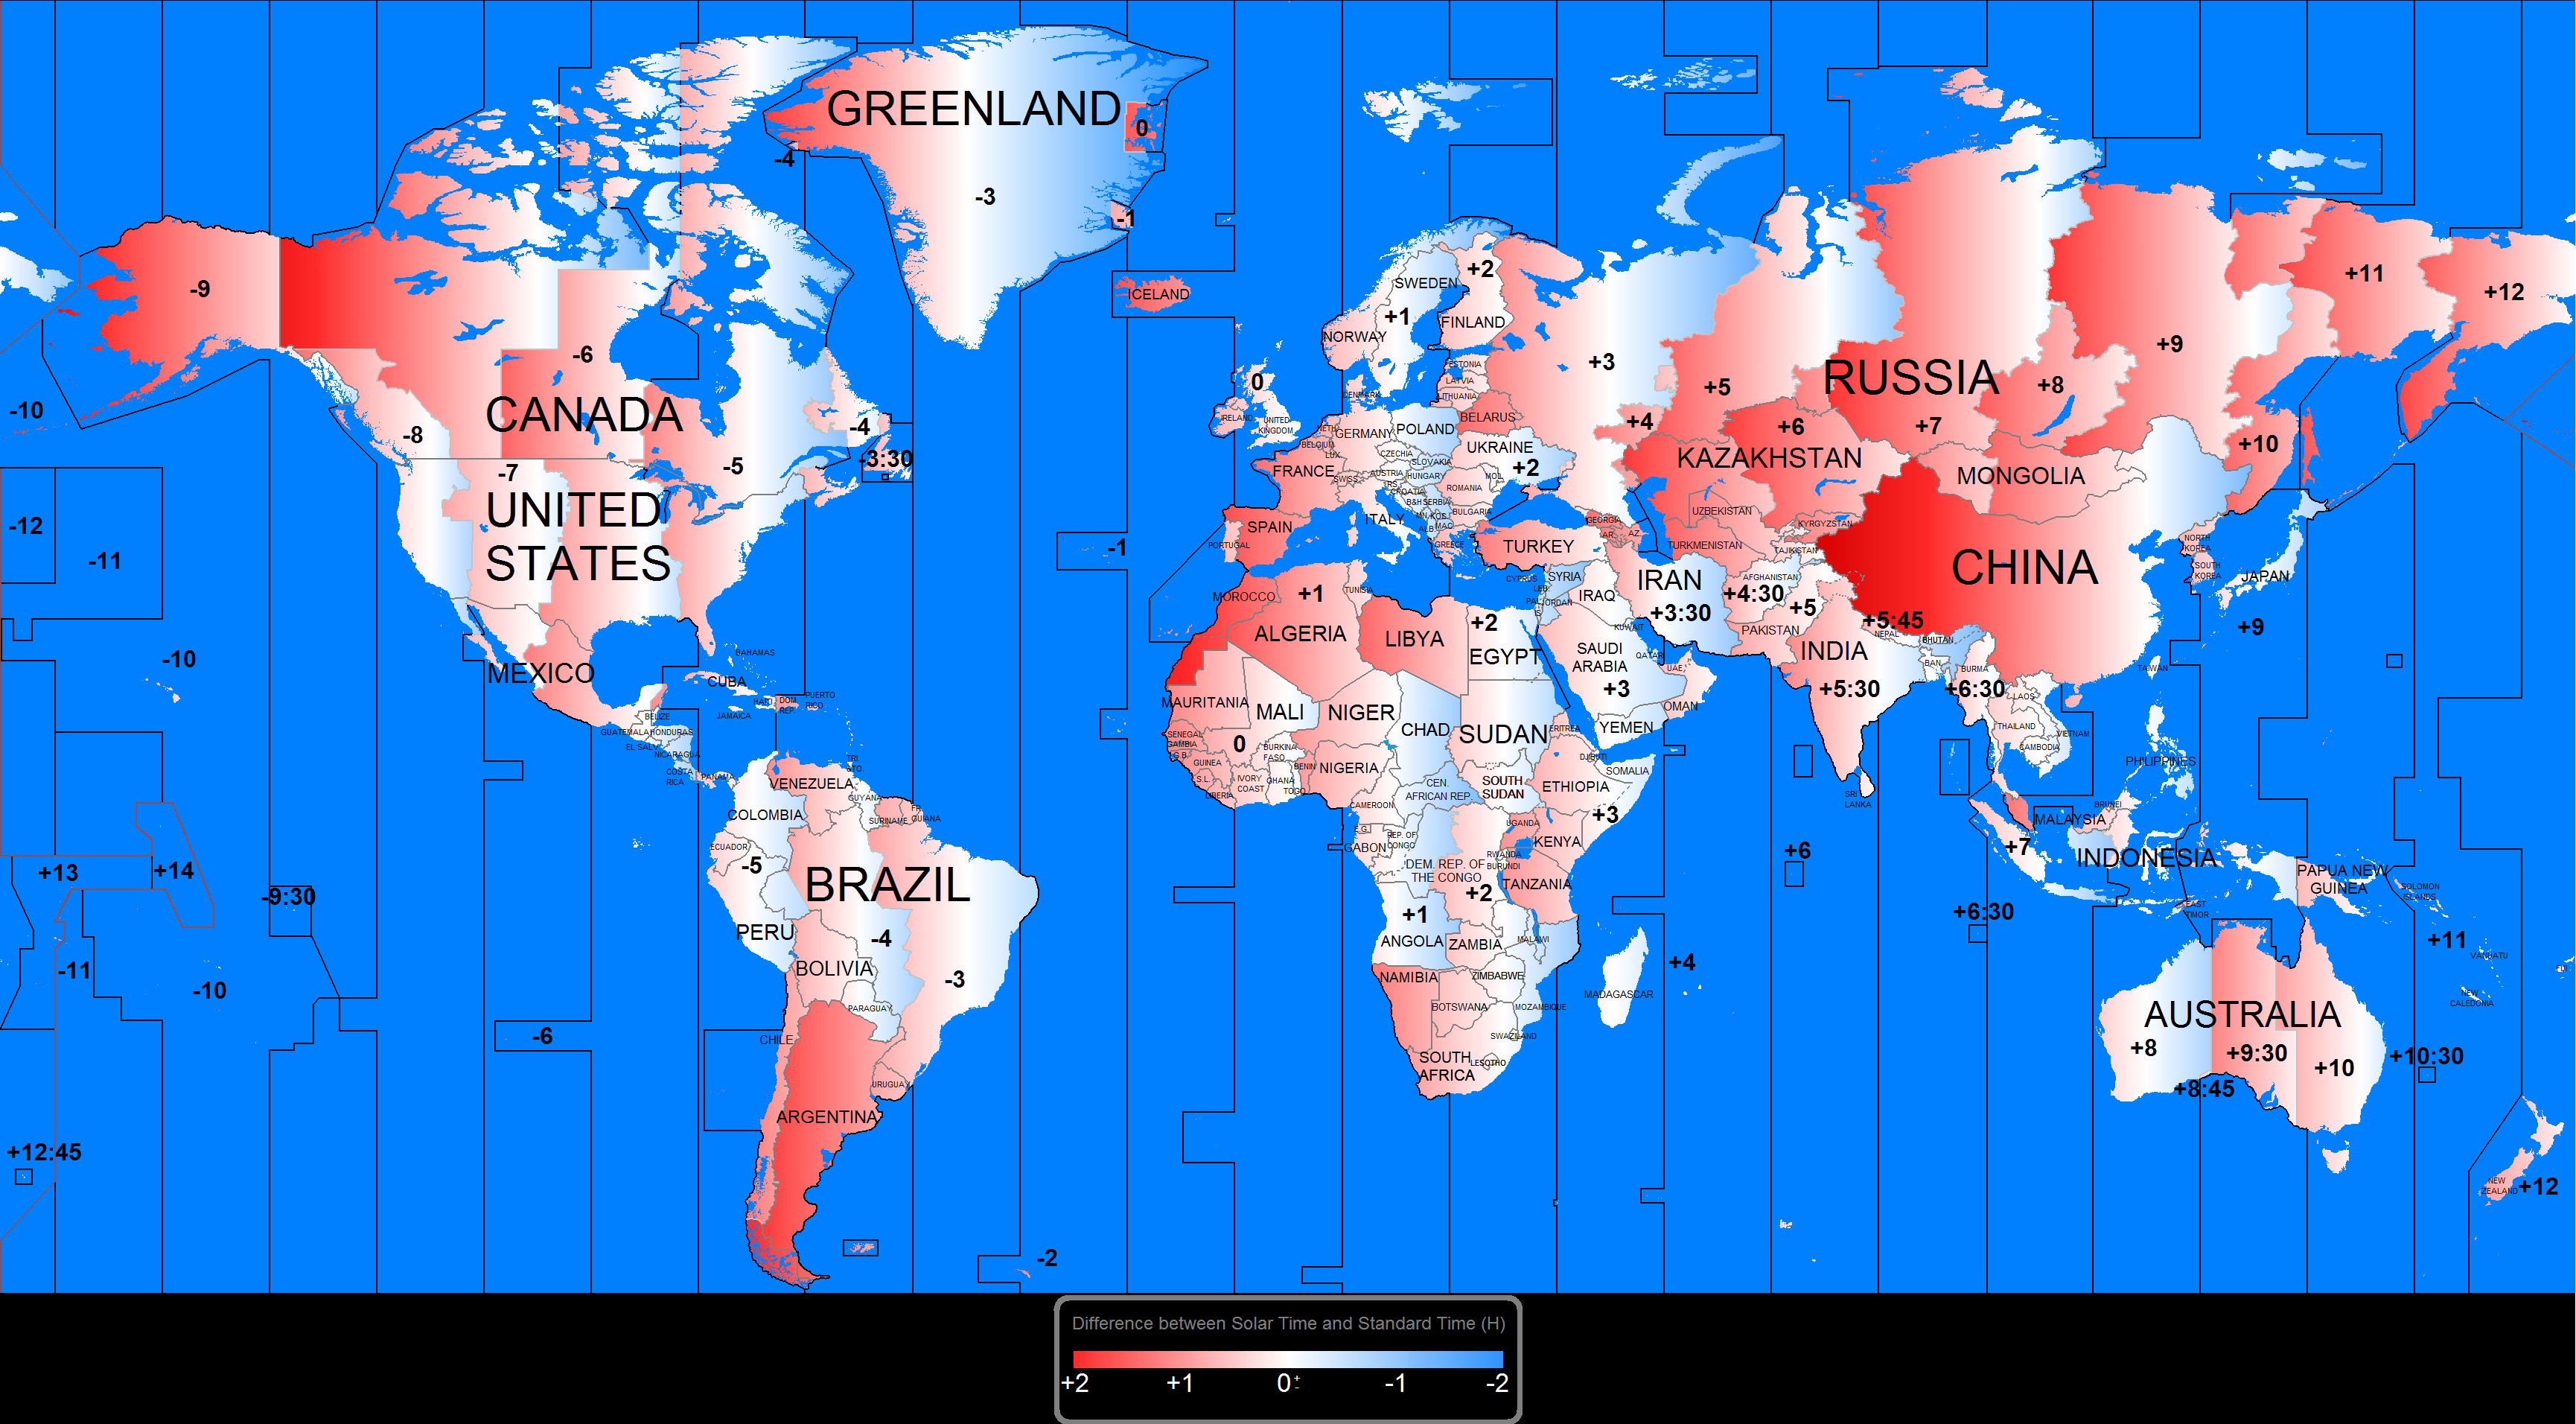 Explainer Why Does China Only Have One Timezone Thatsmagscom - Japan map time zones